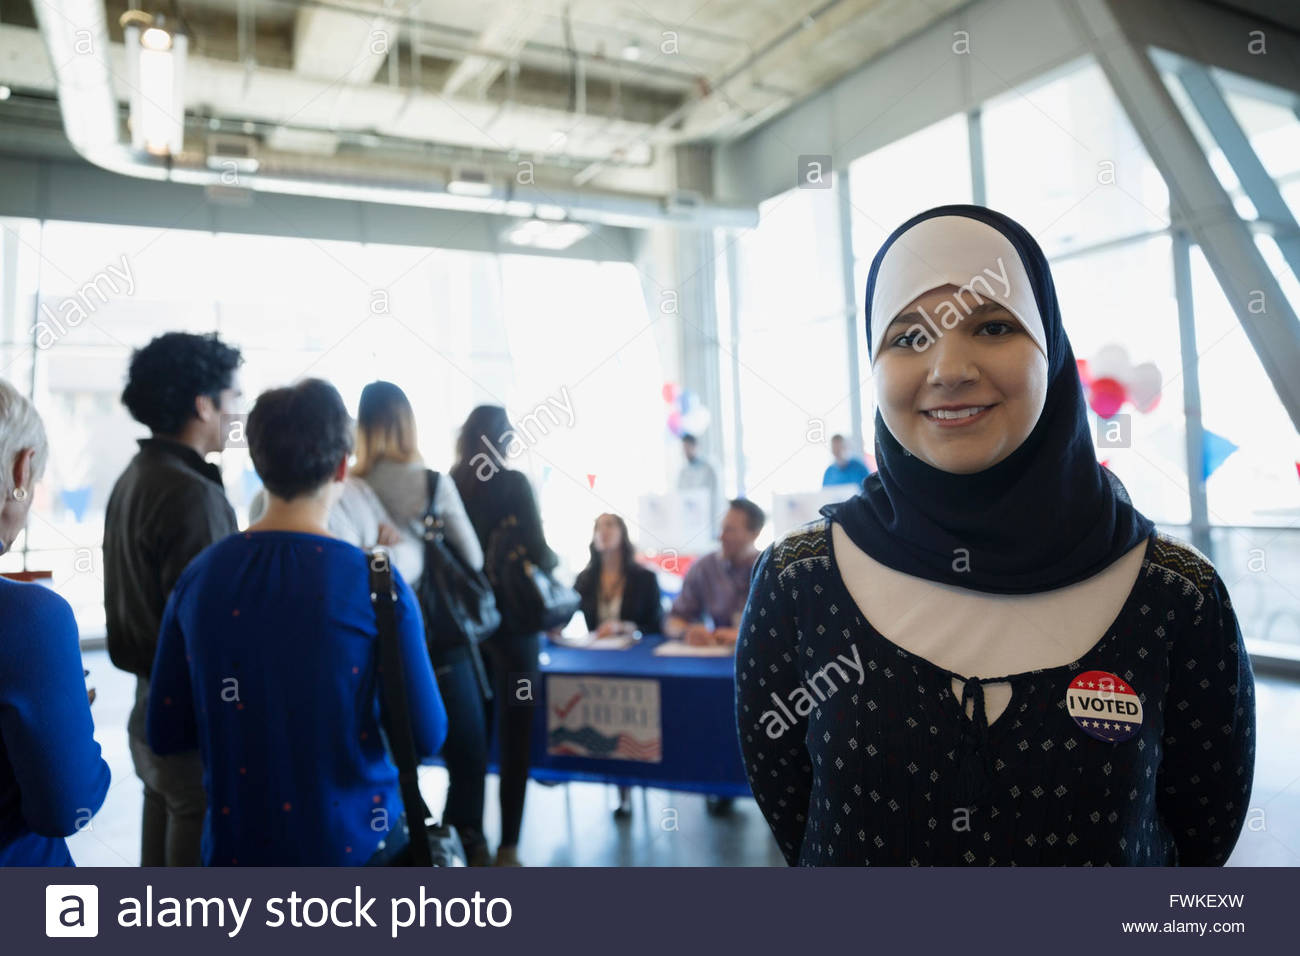 Portrait smiling young woman hijab voter polling place - Stock Image